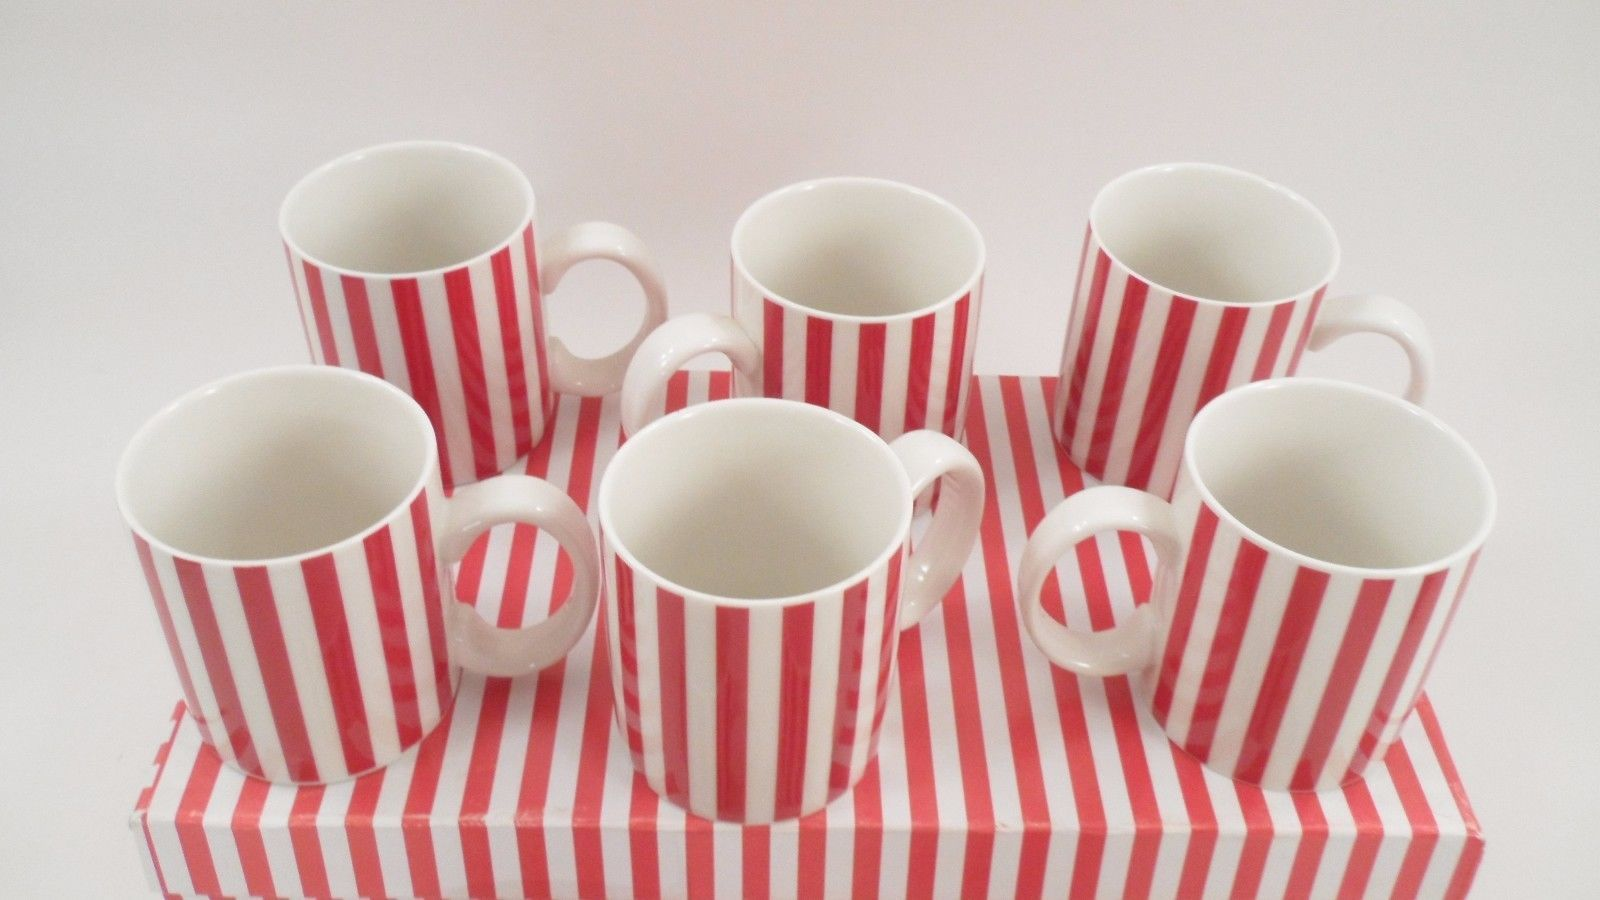 8 Temptations by Tara Candy Cane Red & White Stripe Christmas Holiday Mugs Cups